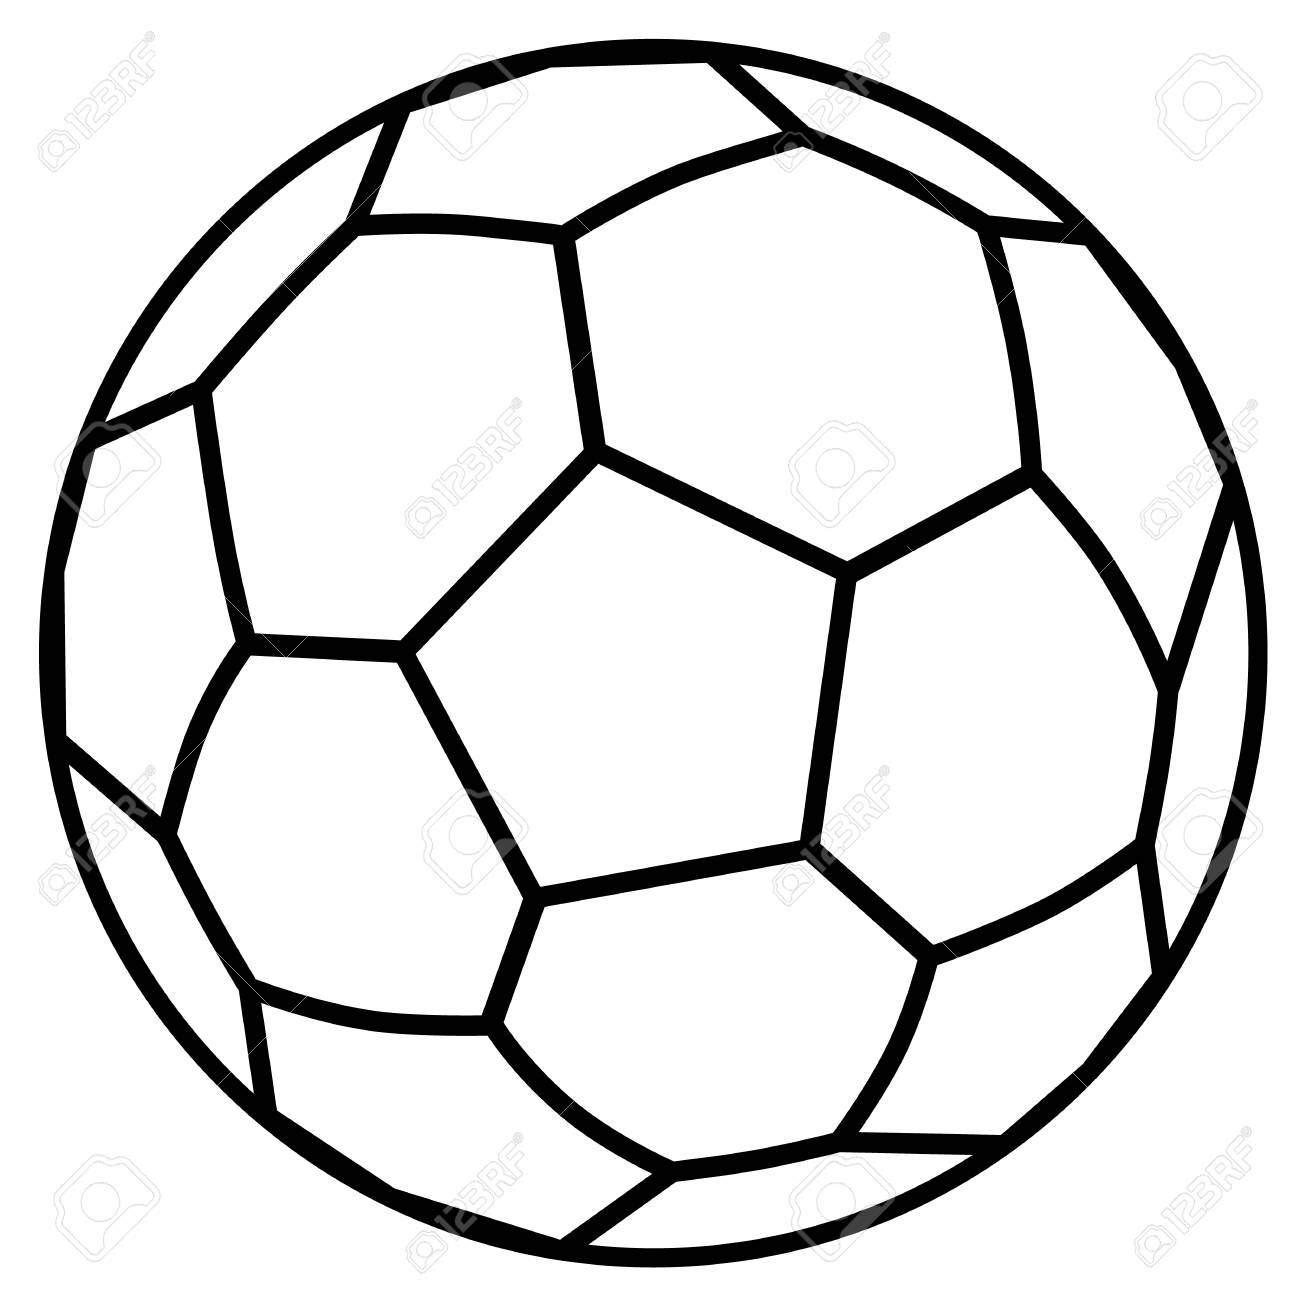 Soccer Ball Outline For Kids Coloring Page Royalty Free Cliparts ...